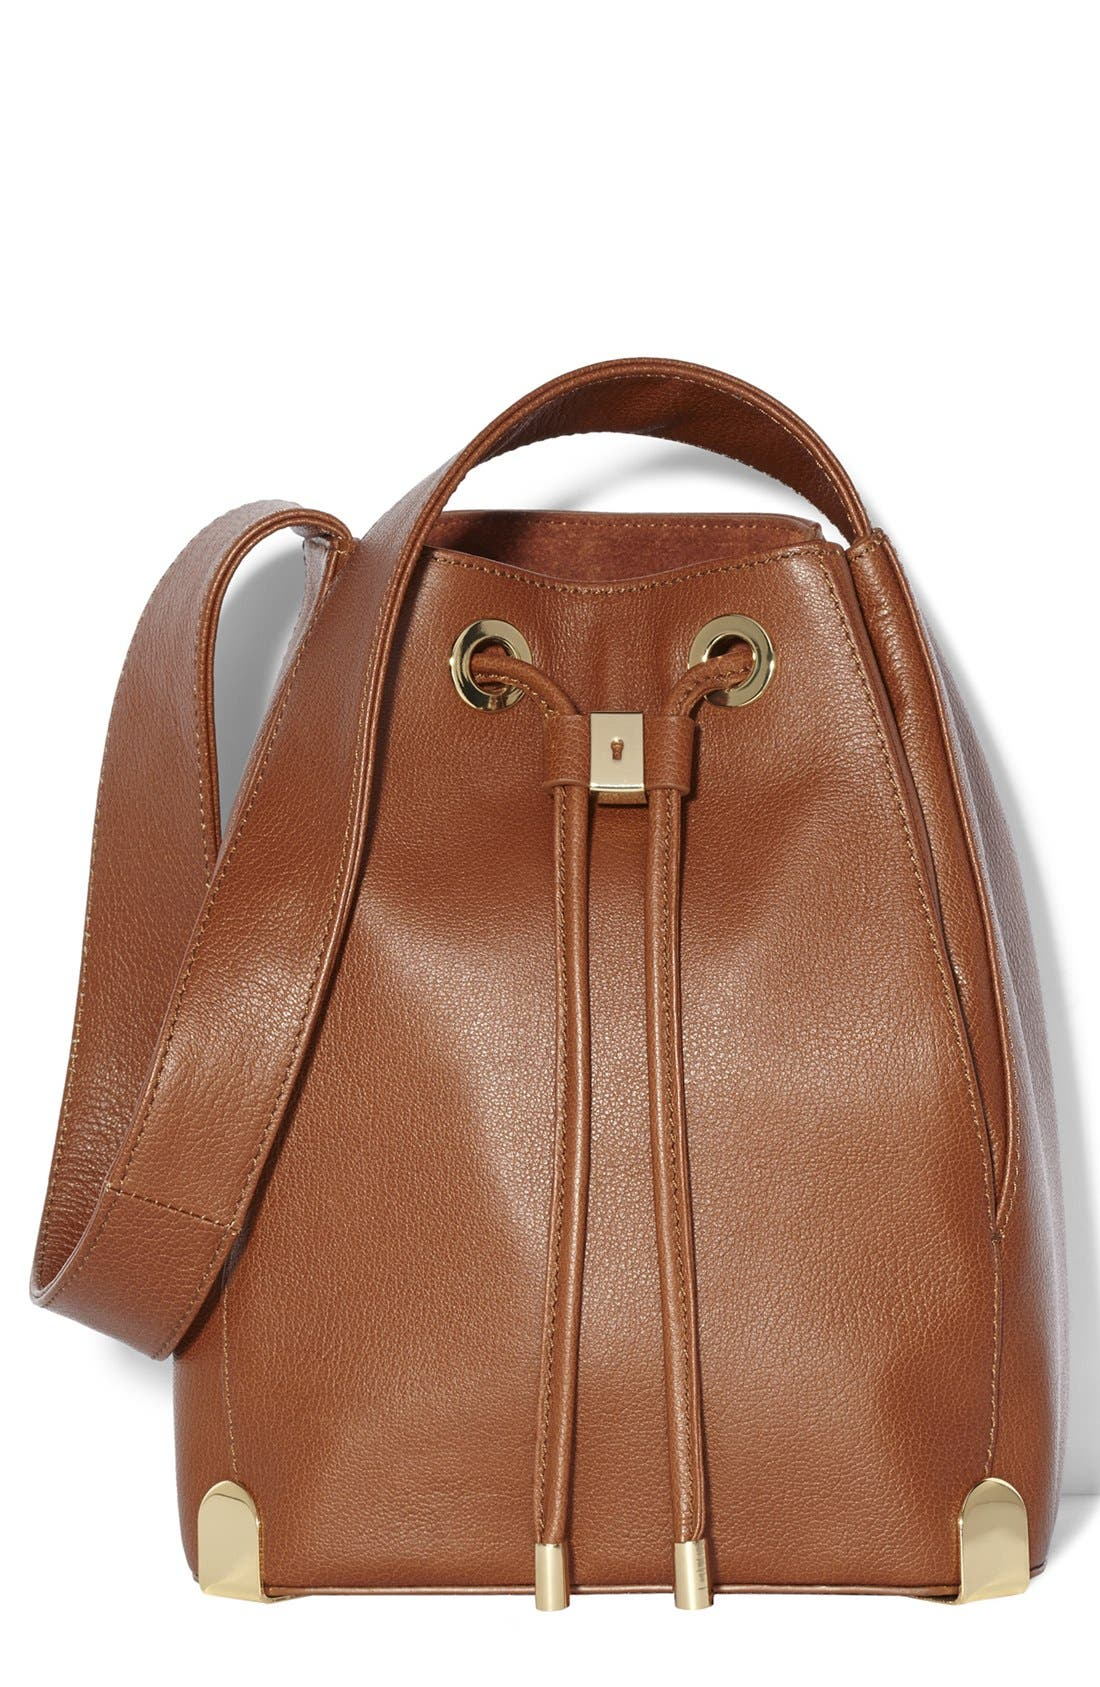 Alternate Image 1 Selected - Vince Camuto 'Janet' Drawstring Tote